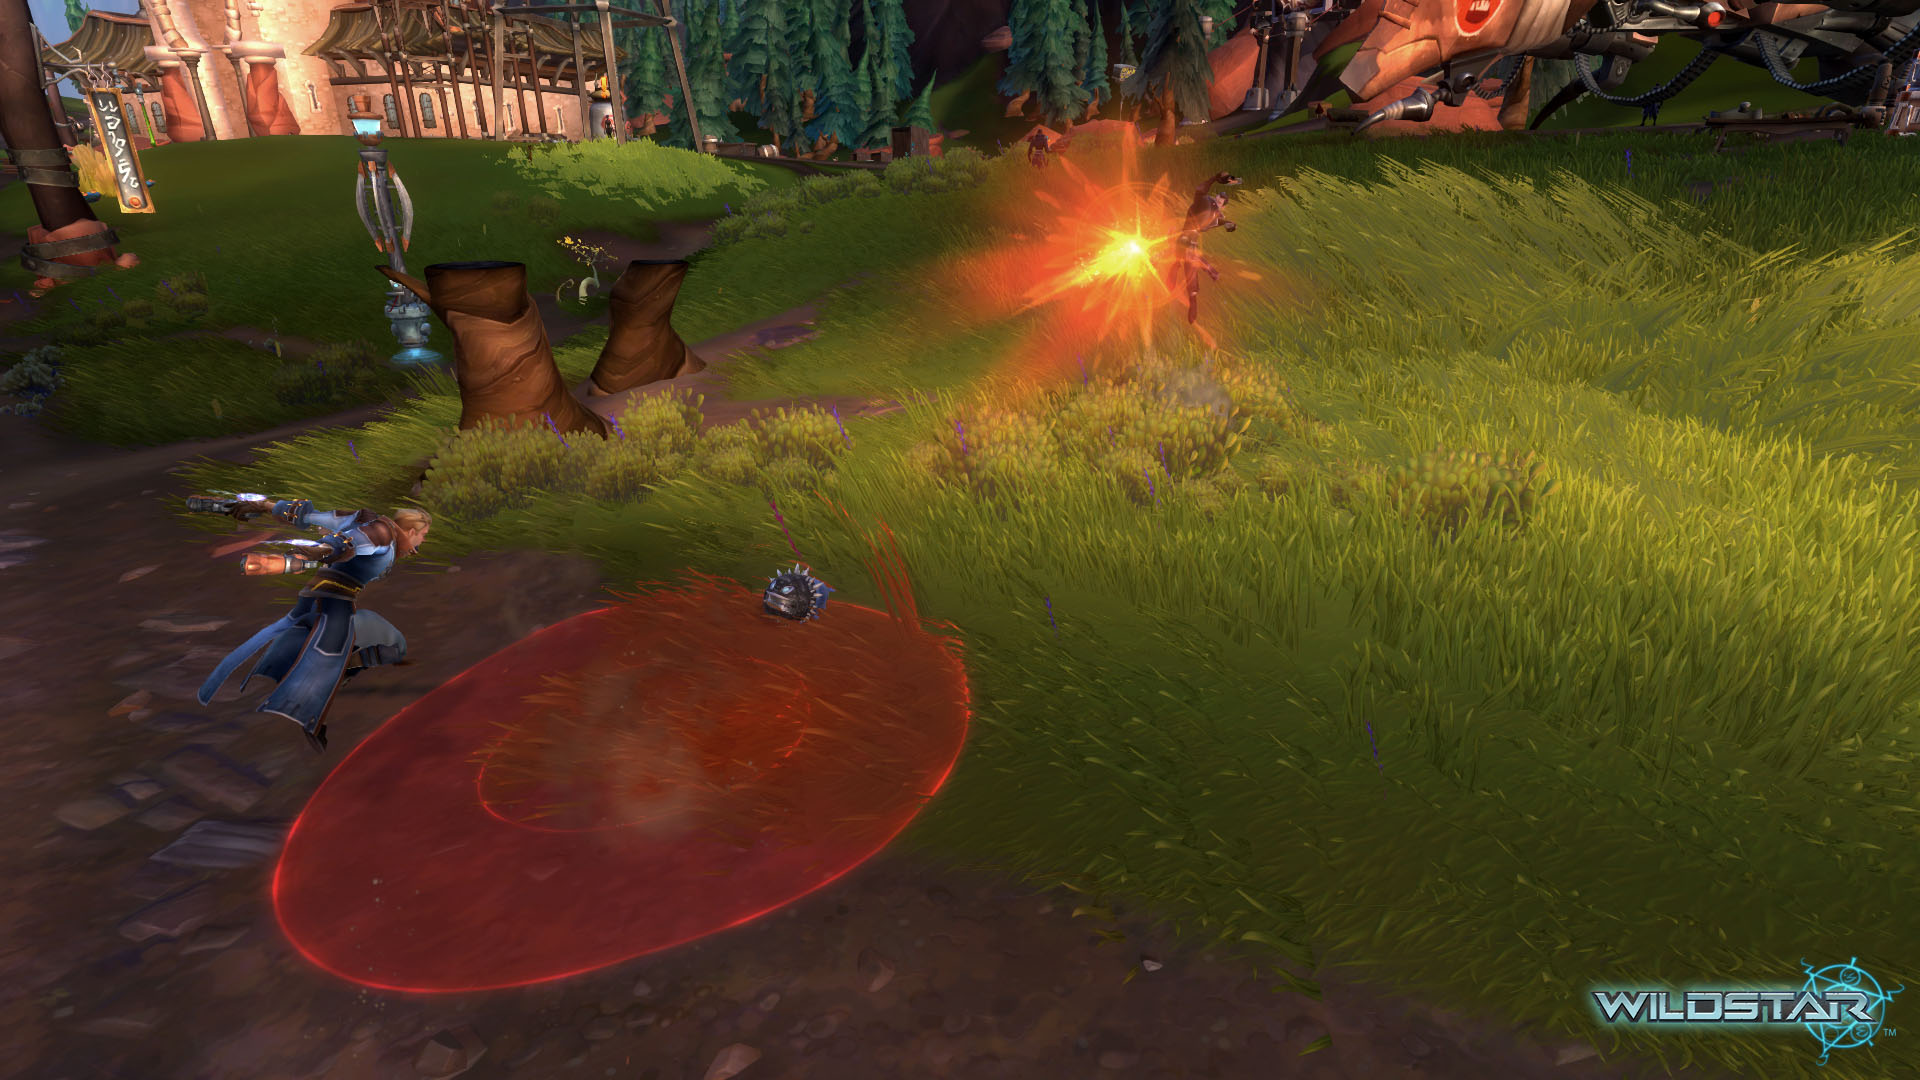 The red circle is what the Wildstar devs are calling telegraphs. It makes combat a bit more frantic than I expected. PVP in this game is nuts!